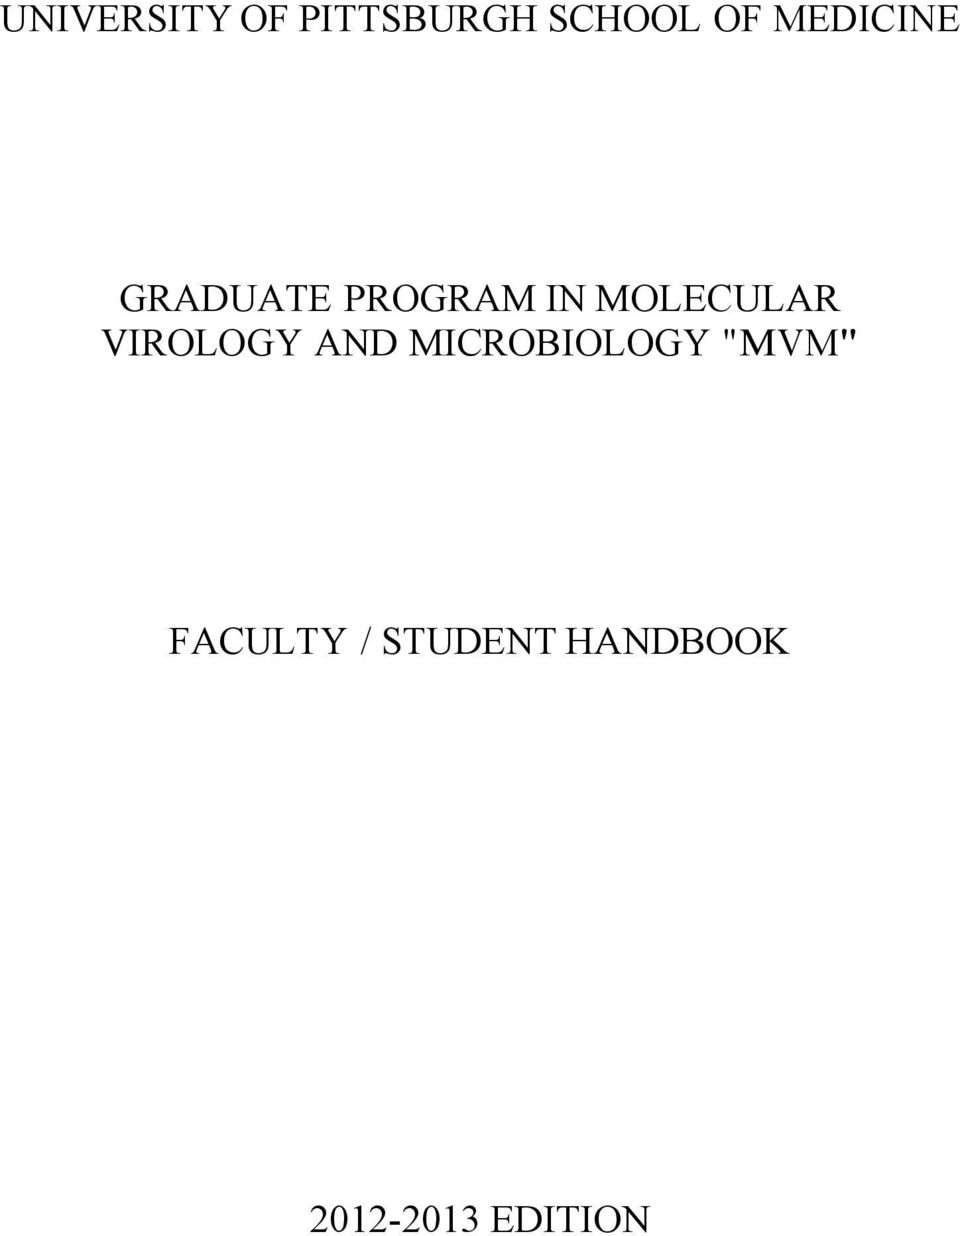 MOLECULAR VIROLOGY AND MICROBIOLOGY